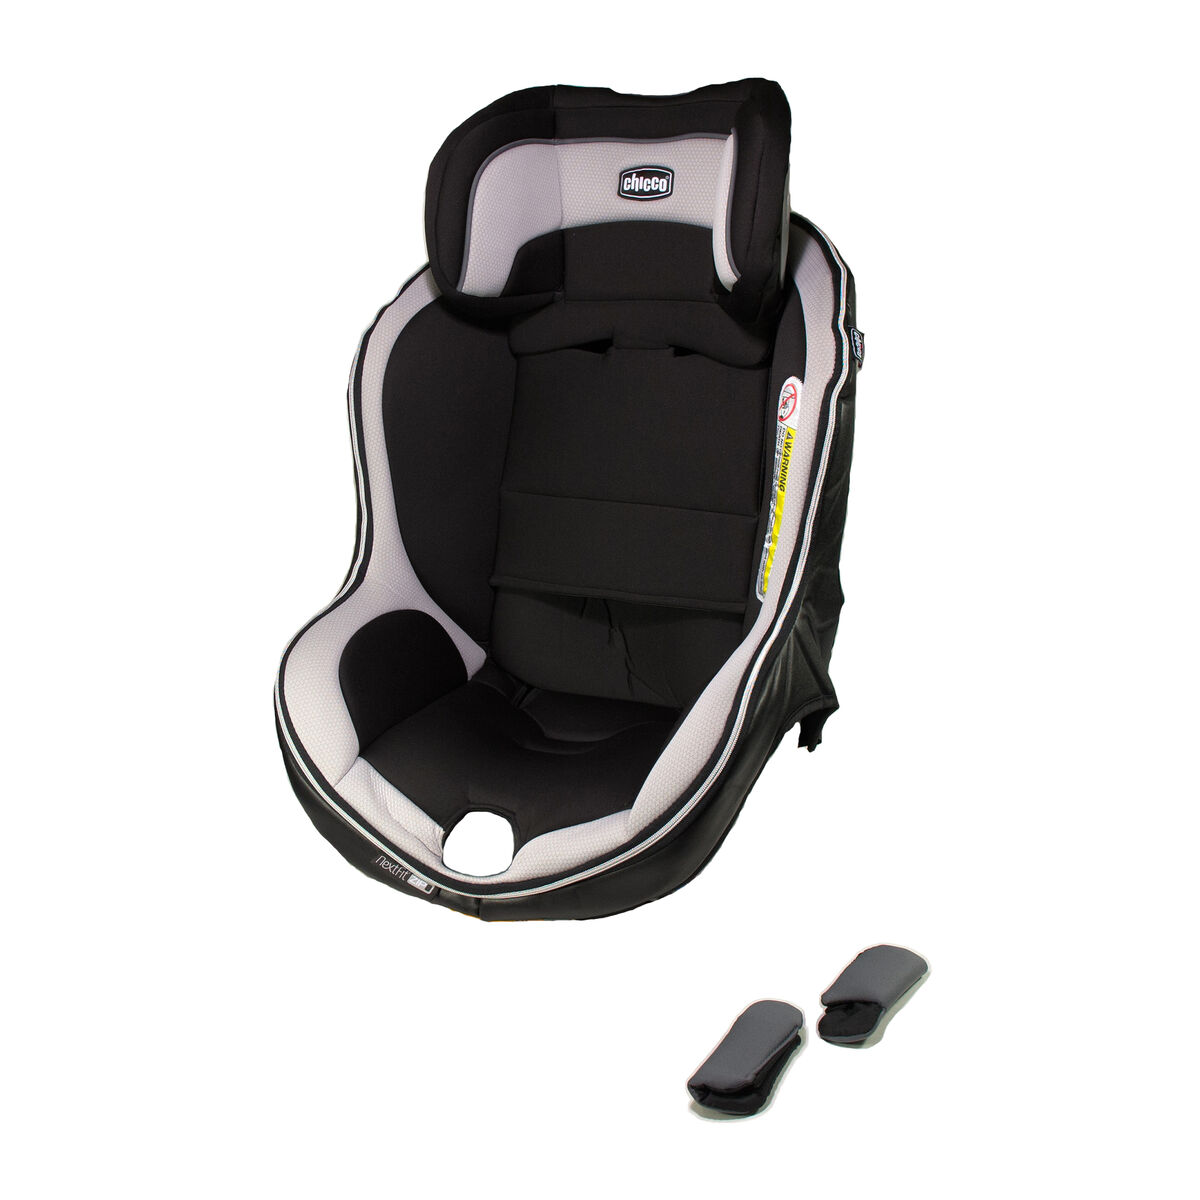 NextFit Zip - Seat Cover, Head Rest and Shoulder Pads